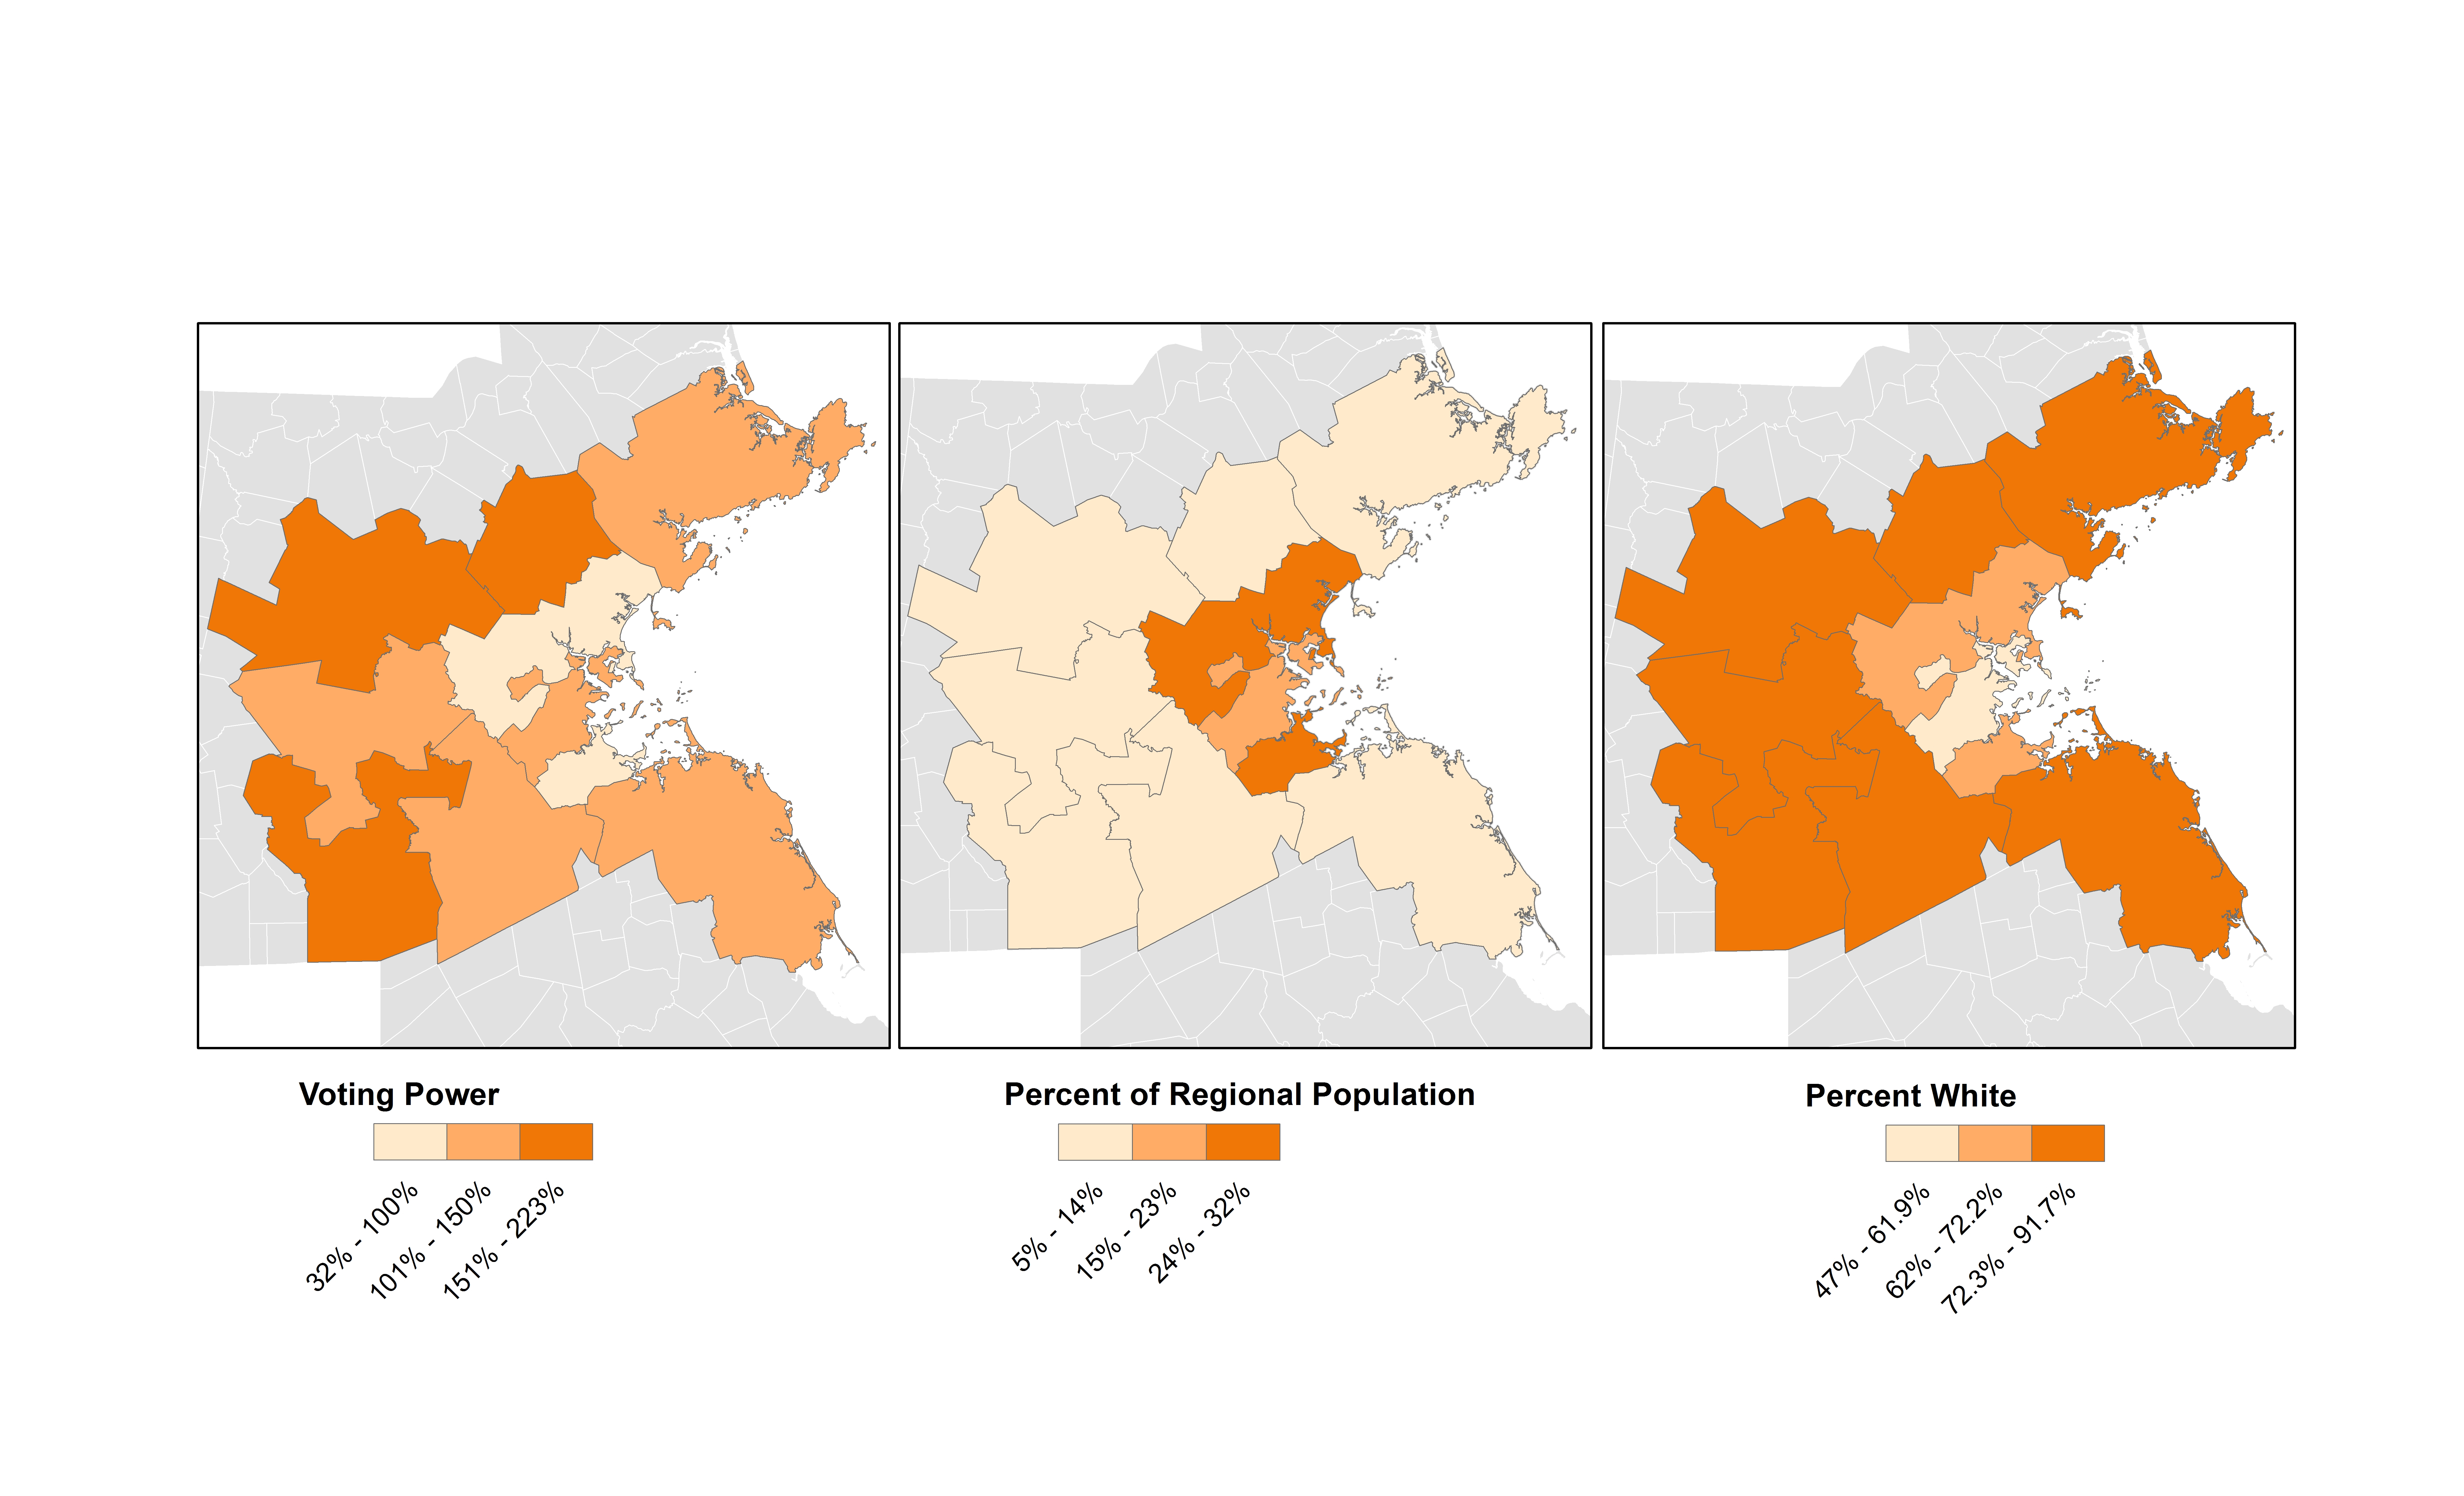 GIS and stastical analysis of representation on the Boston-area transportation planning organization revealed that the suburbs had the most voting power (darker oranges in left map) and represented the least percentage of the total population (lighter orange in middle map) and were more heavily white (dark orange, right map). Courtesy of Marcos Luna, Salem State University.